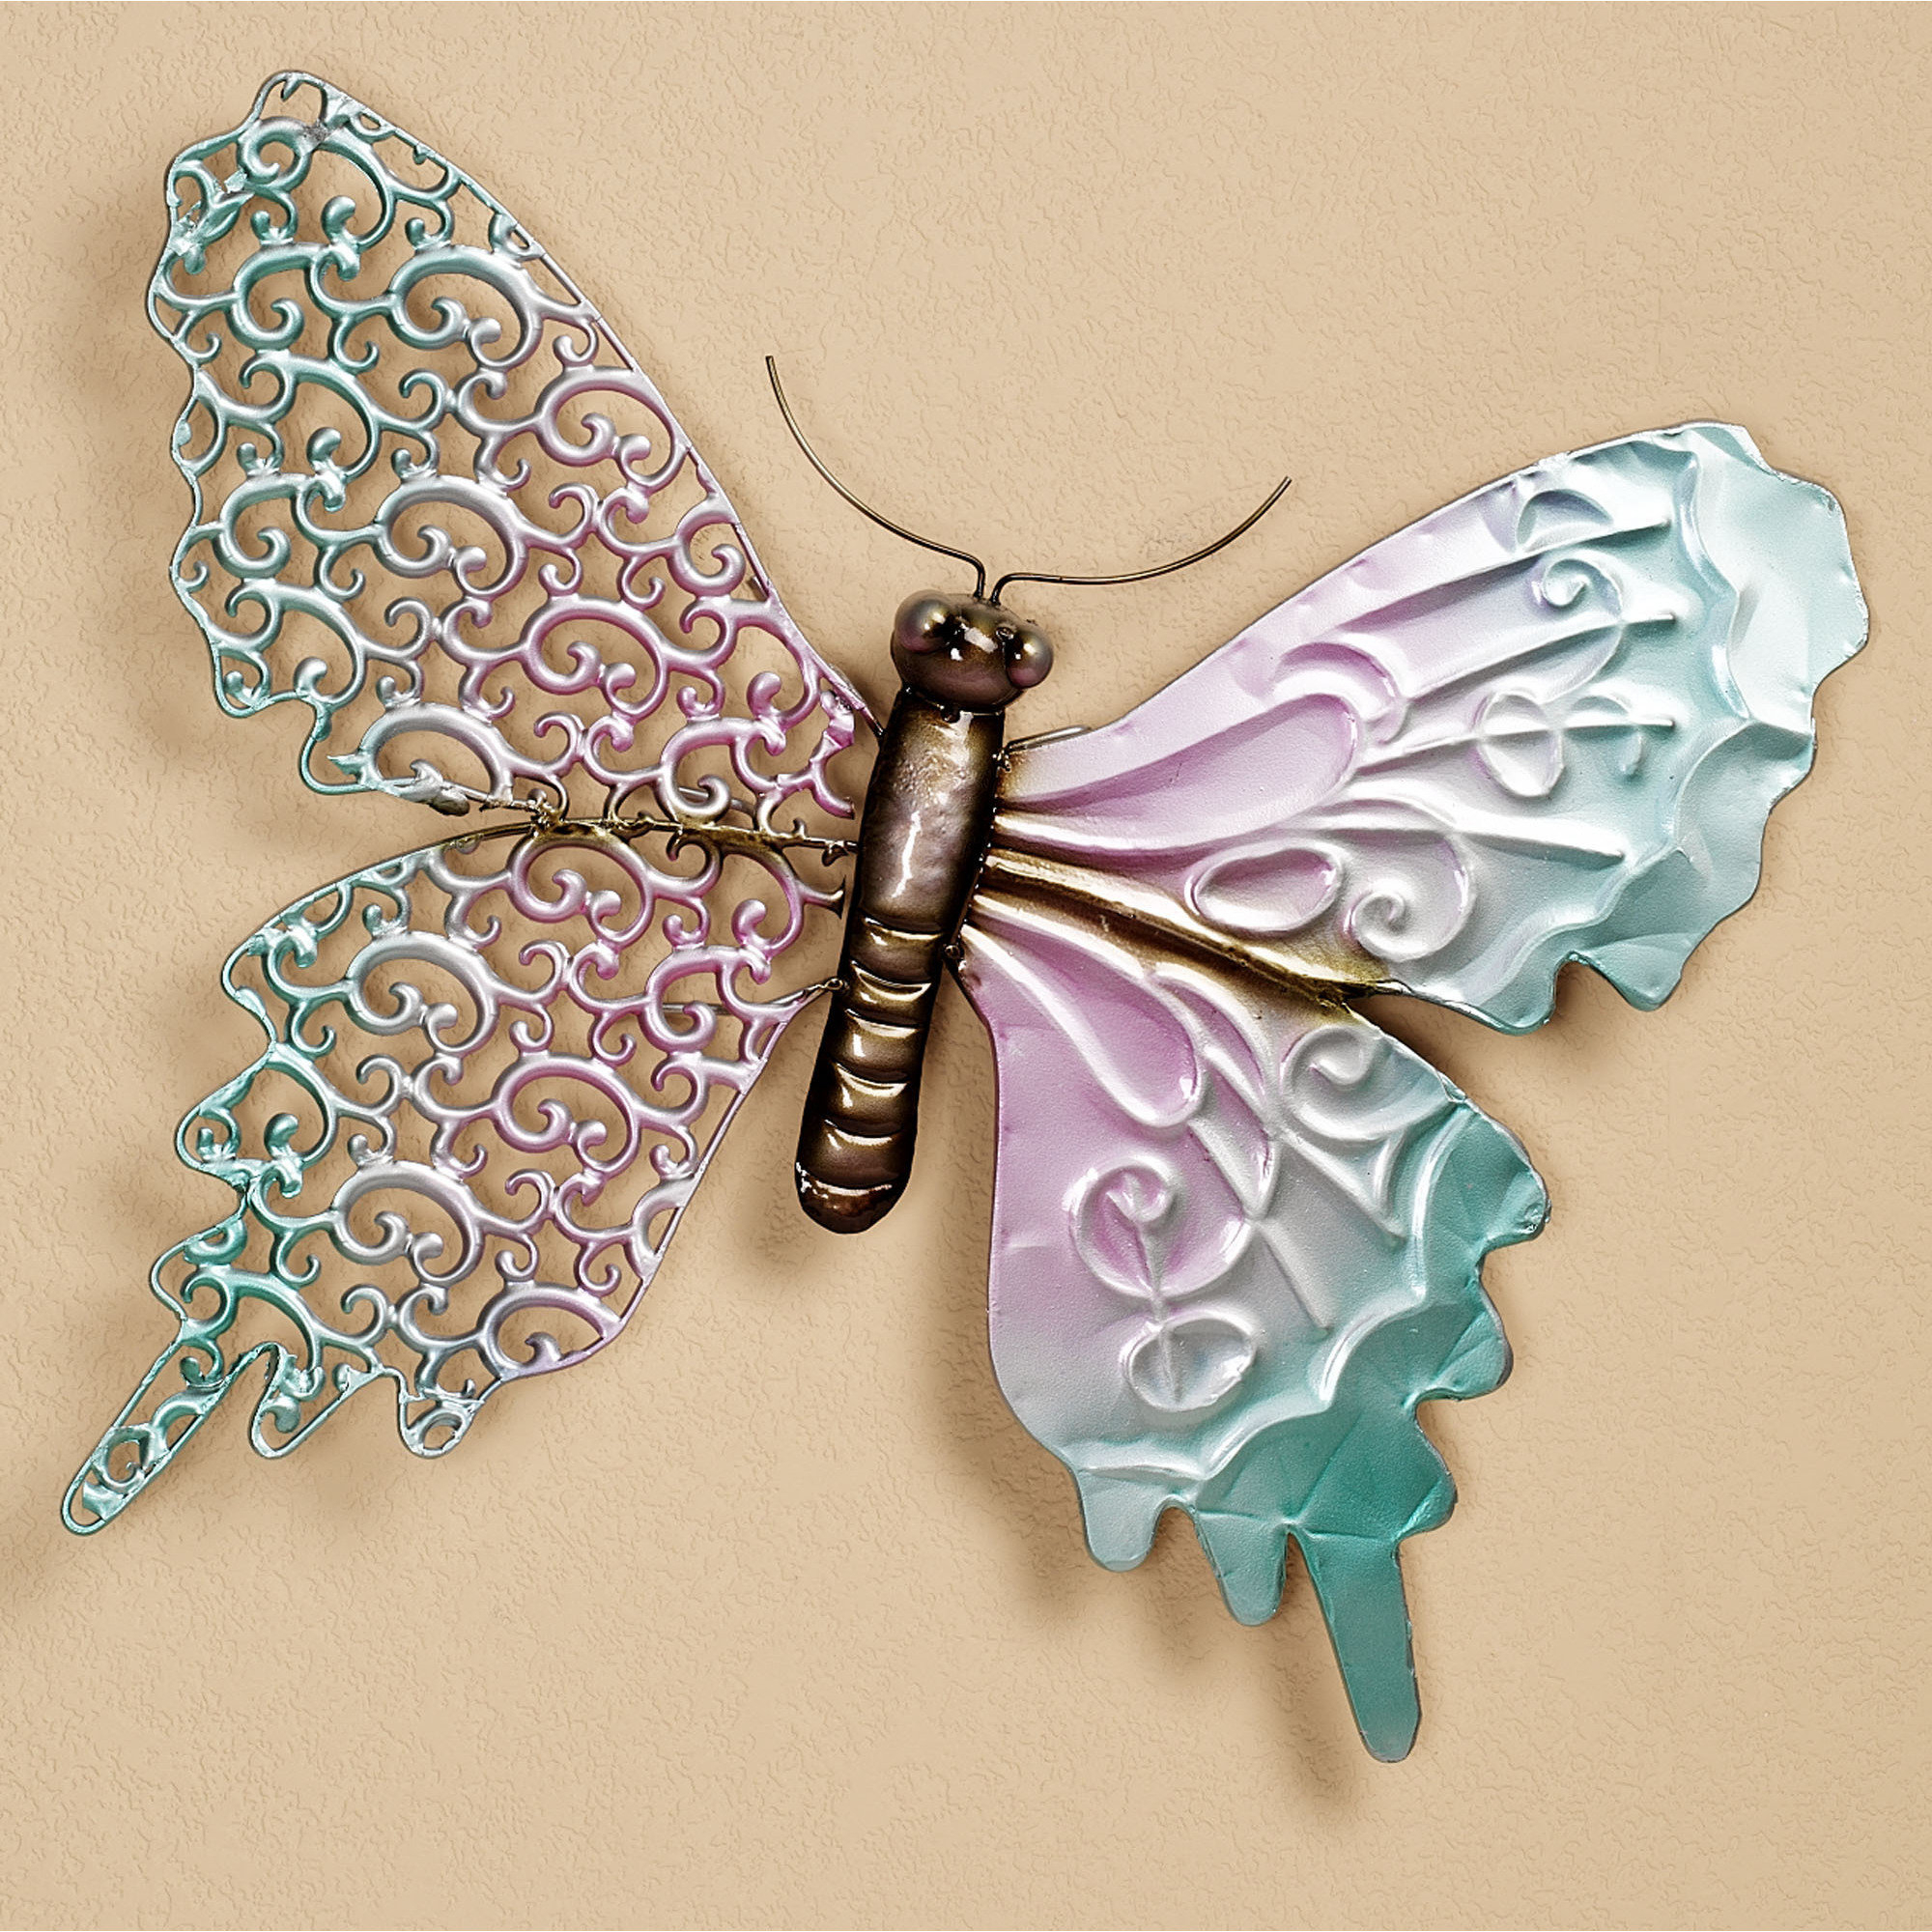 Ila Metal Butterfly Wall Decor Regarding Recent 25 Magnanimous Butterfly Wall Decor That Gives You Pleasure (Gallery 14 of 20)